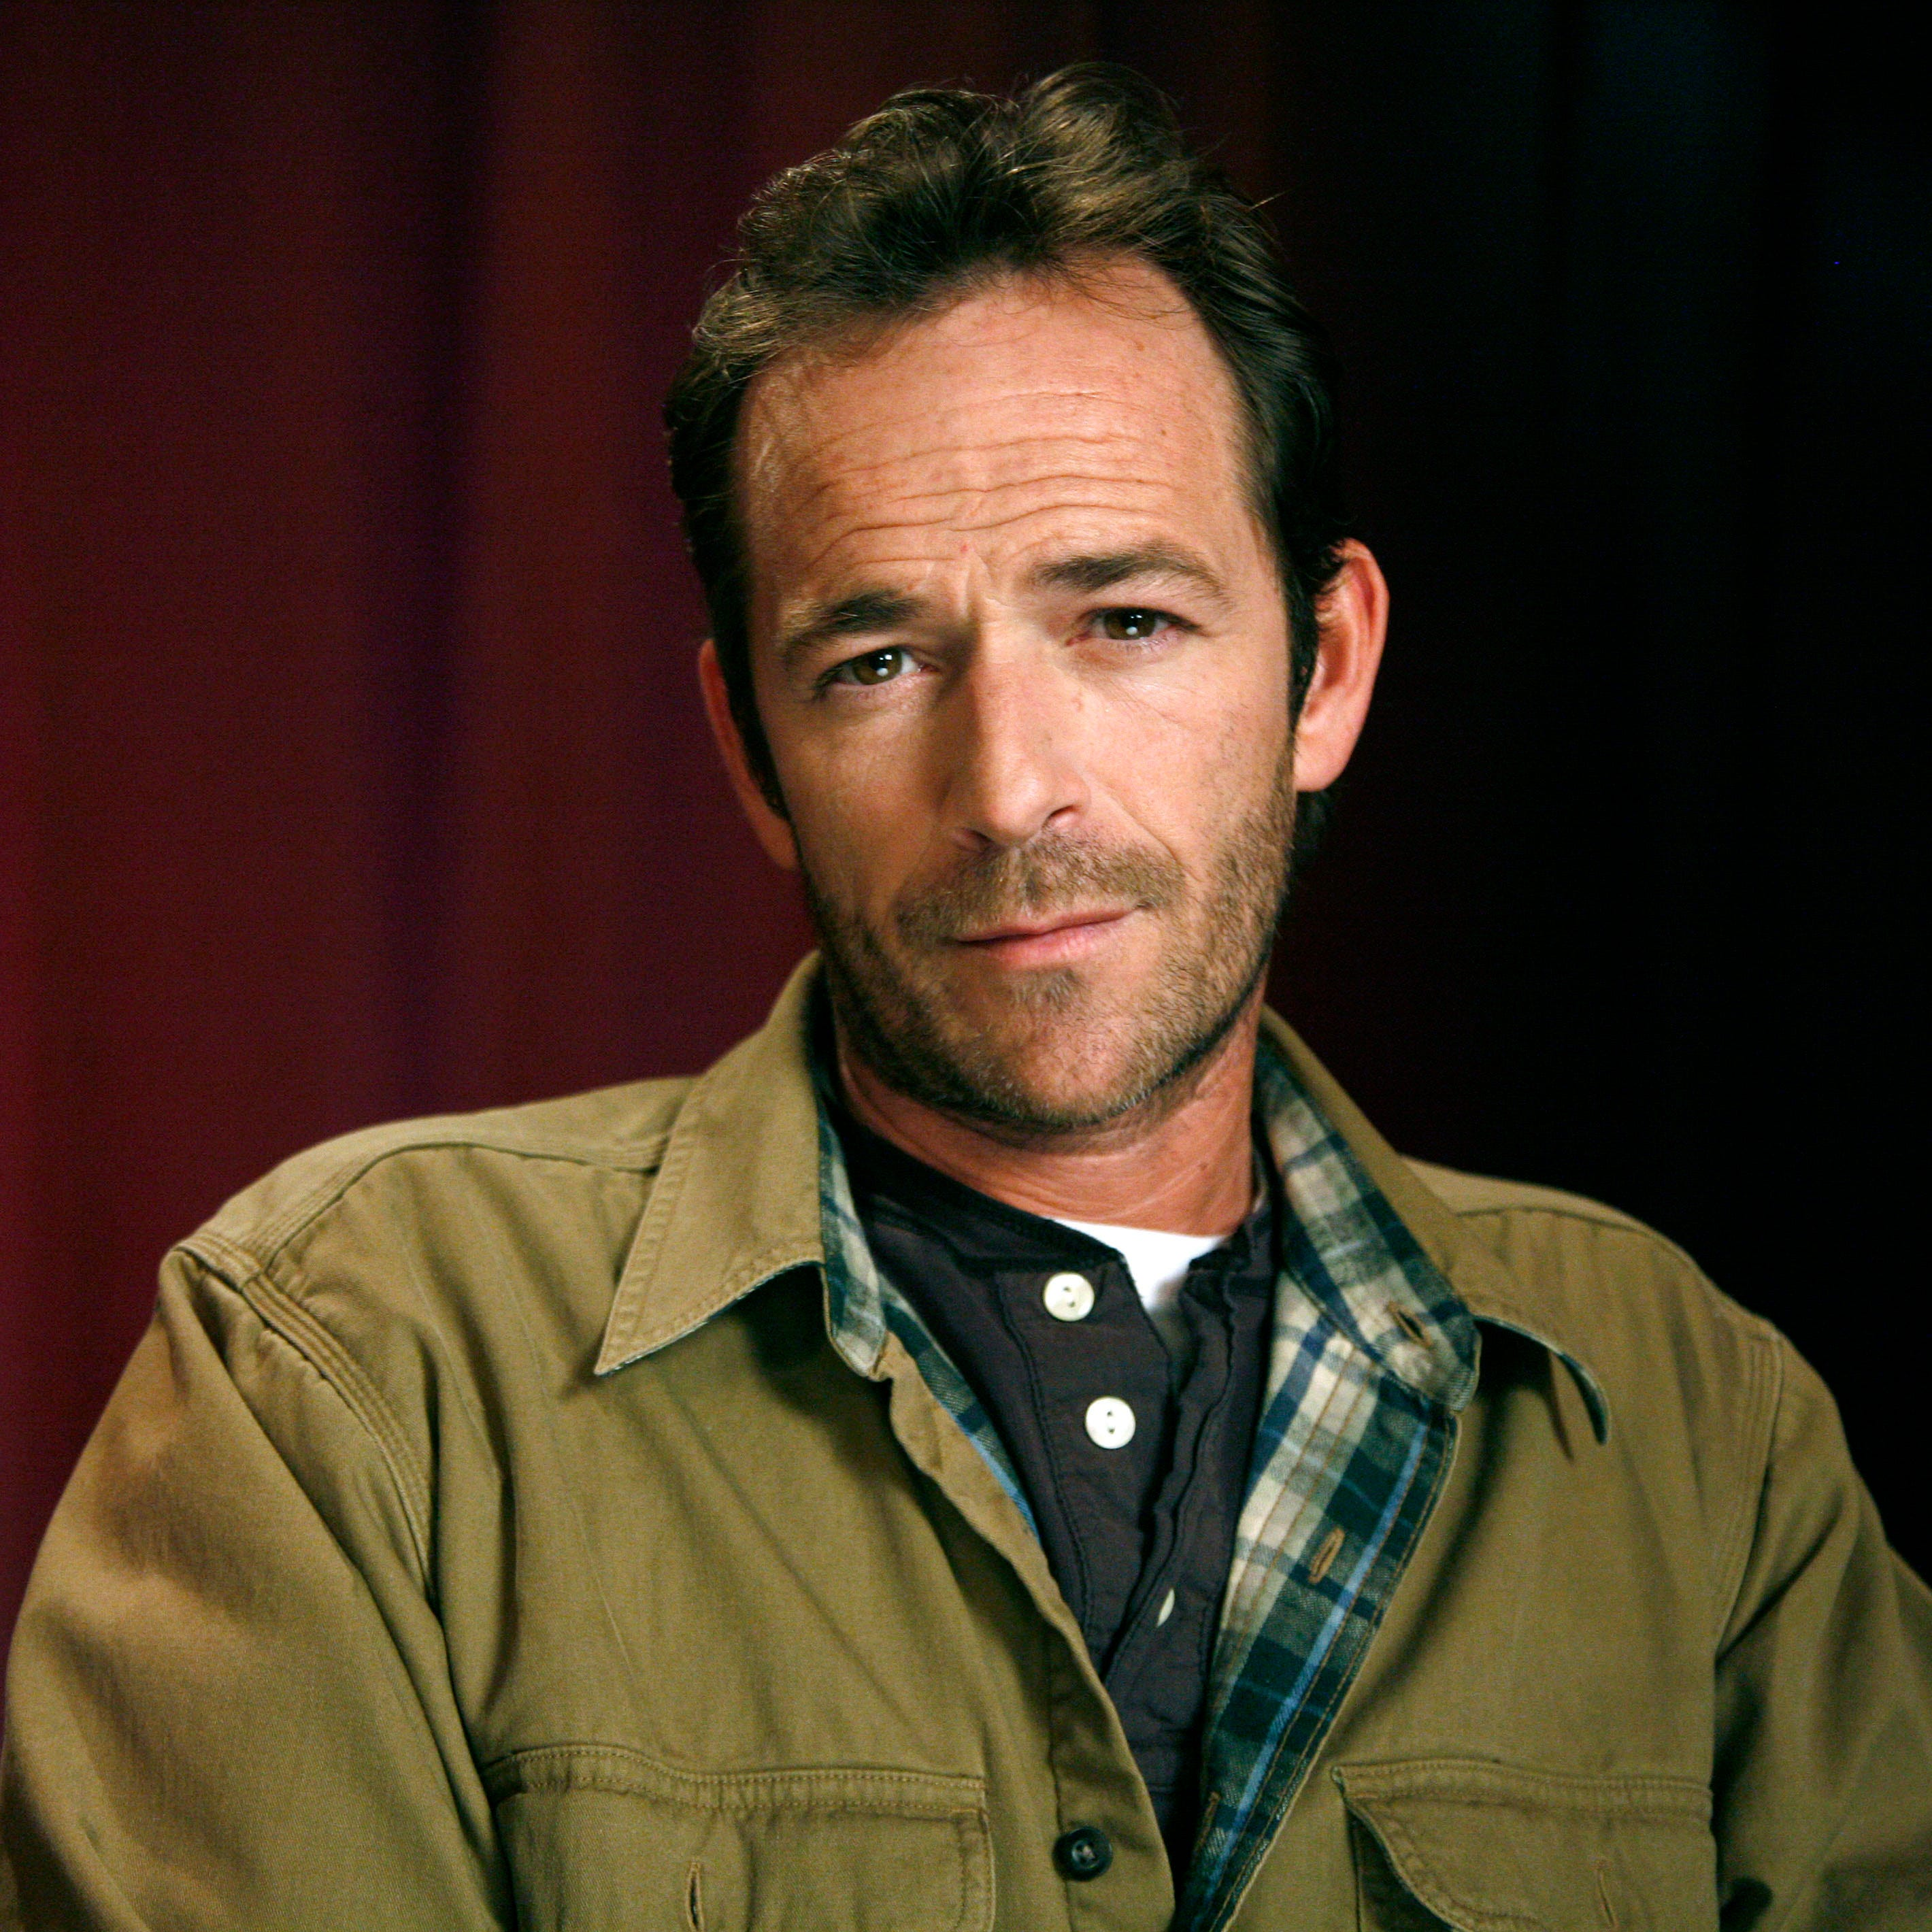 Luke Perry buried in Tennessee in eco-friendly mushroom suit, daughter says